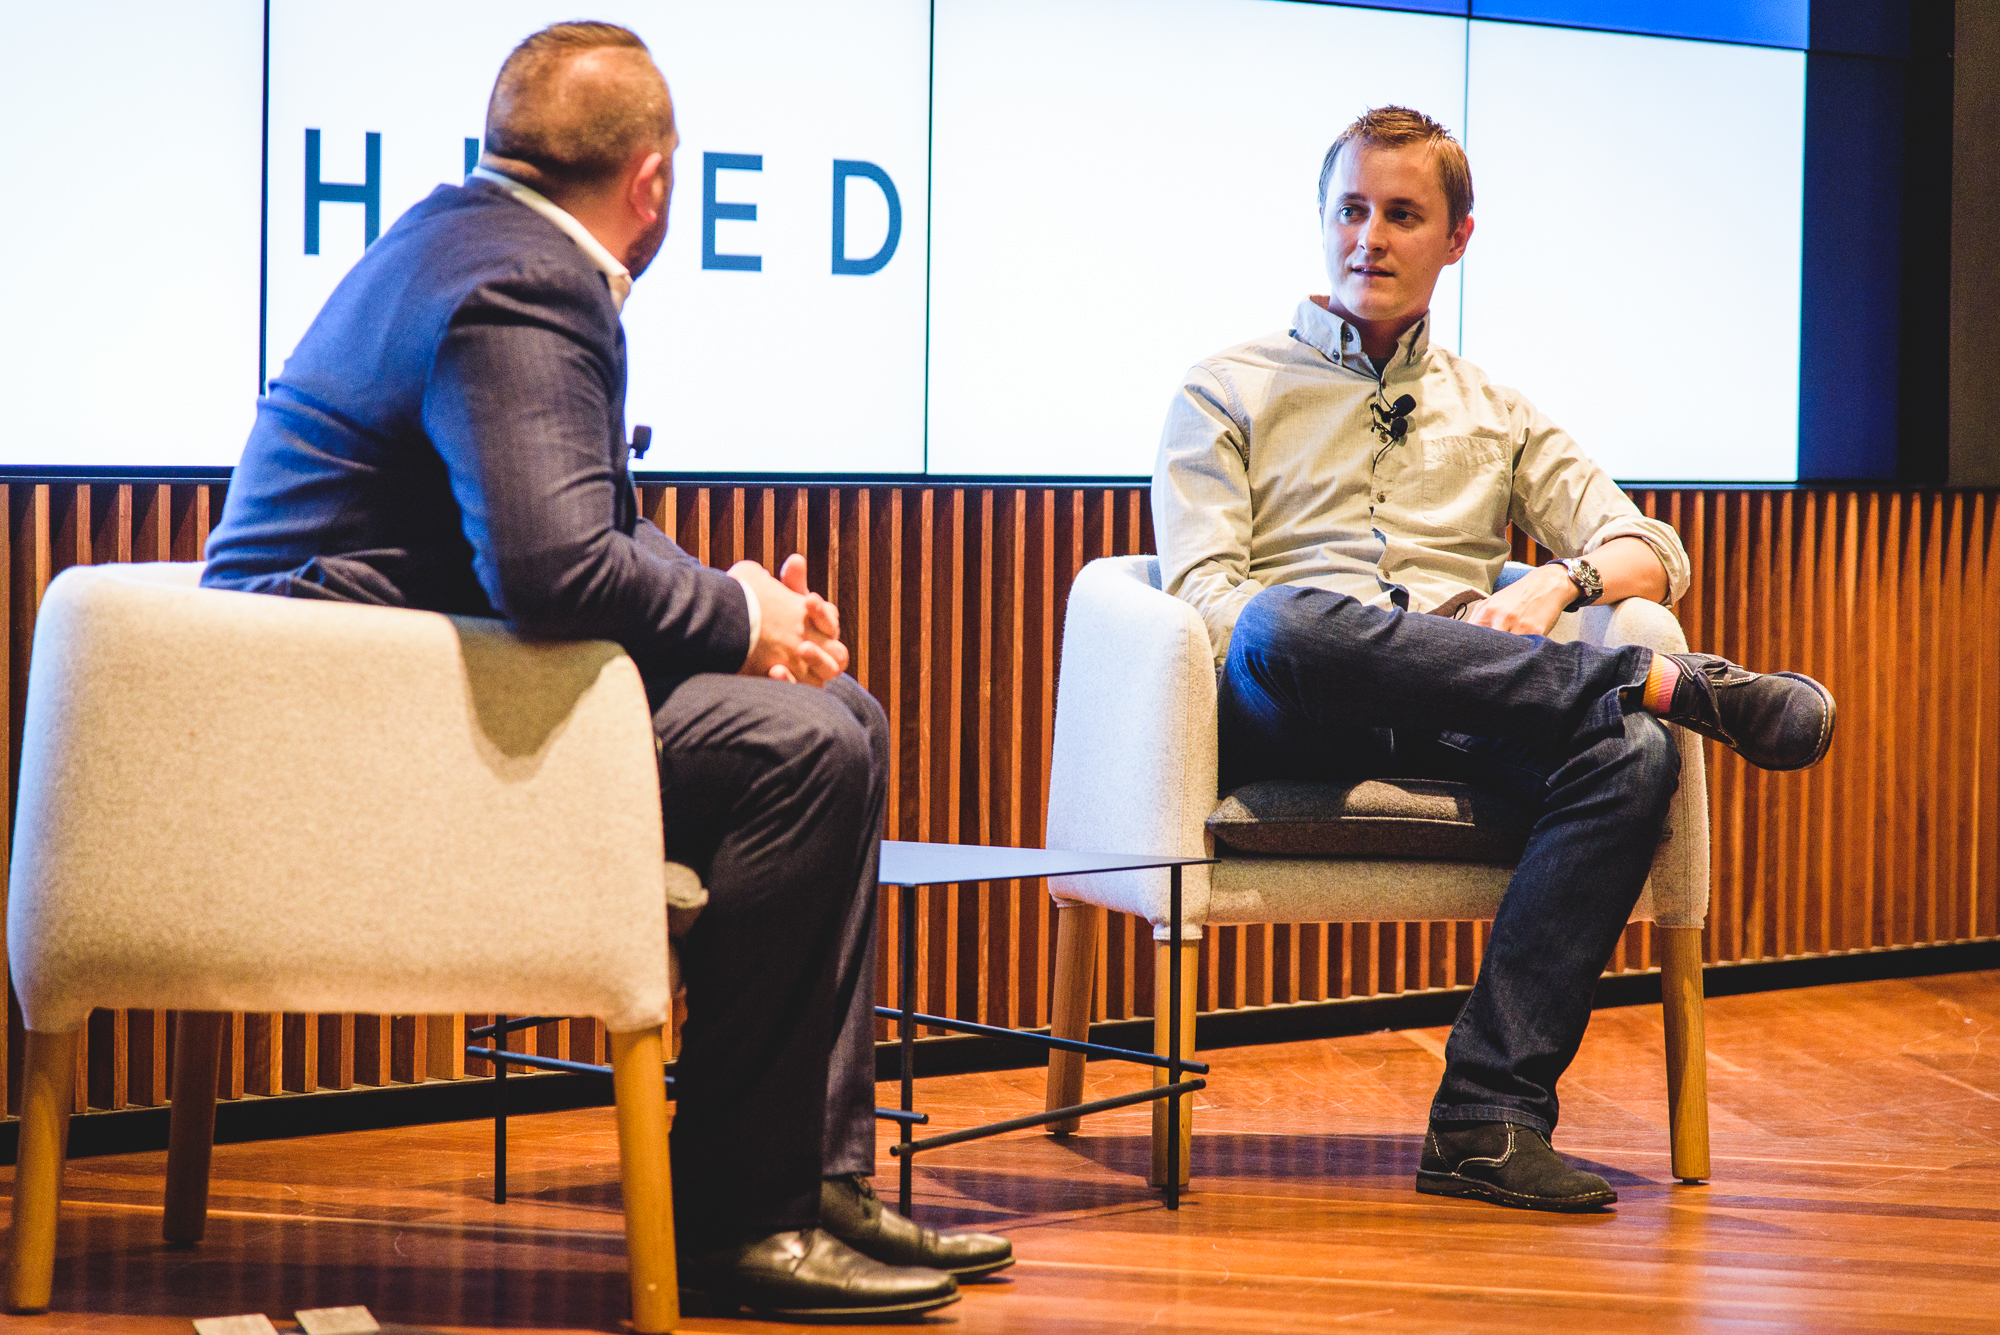 Hired co-founder Matt Mickiewicz speaking with Startup Grind ANZ director Chris Joannou  (Image: Startup Melbourne)